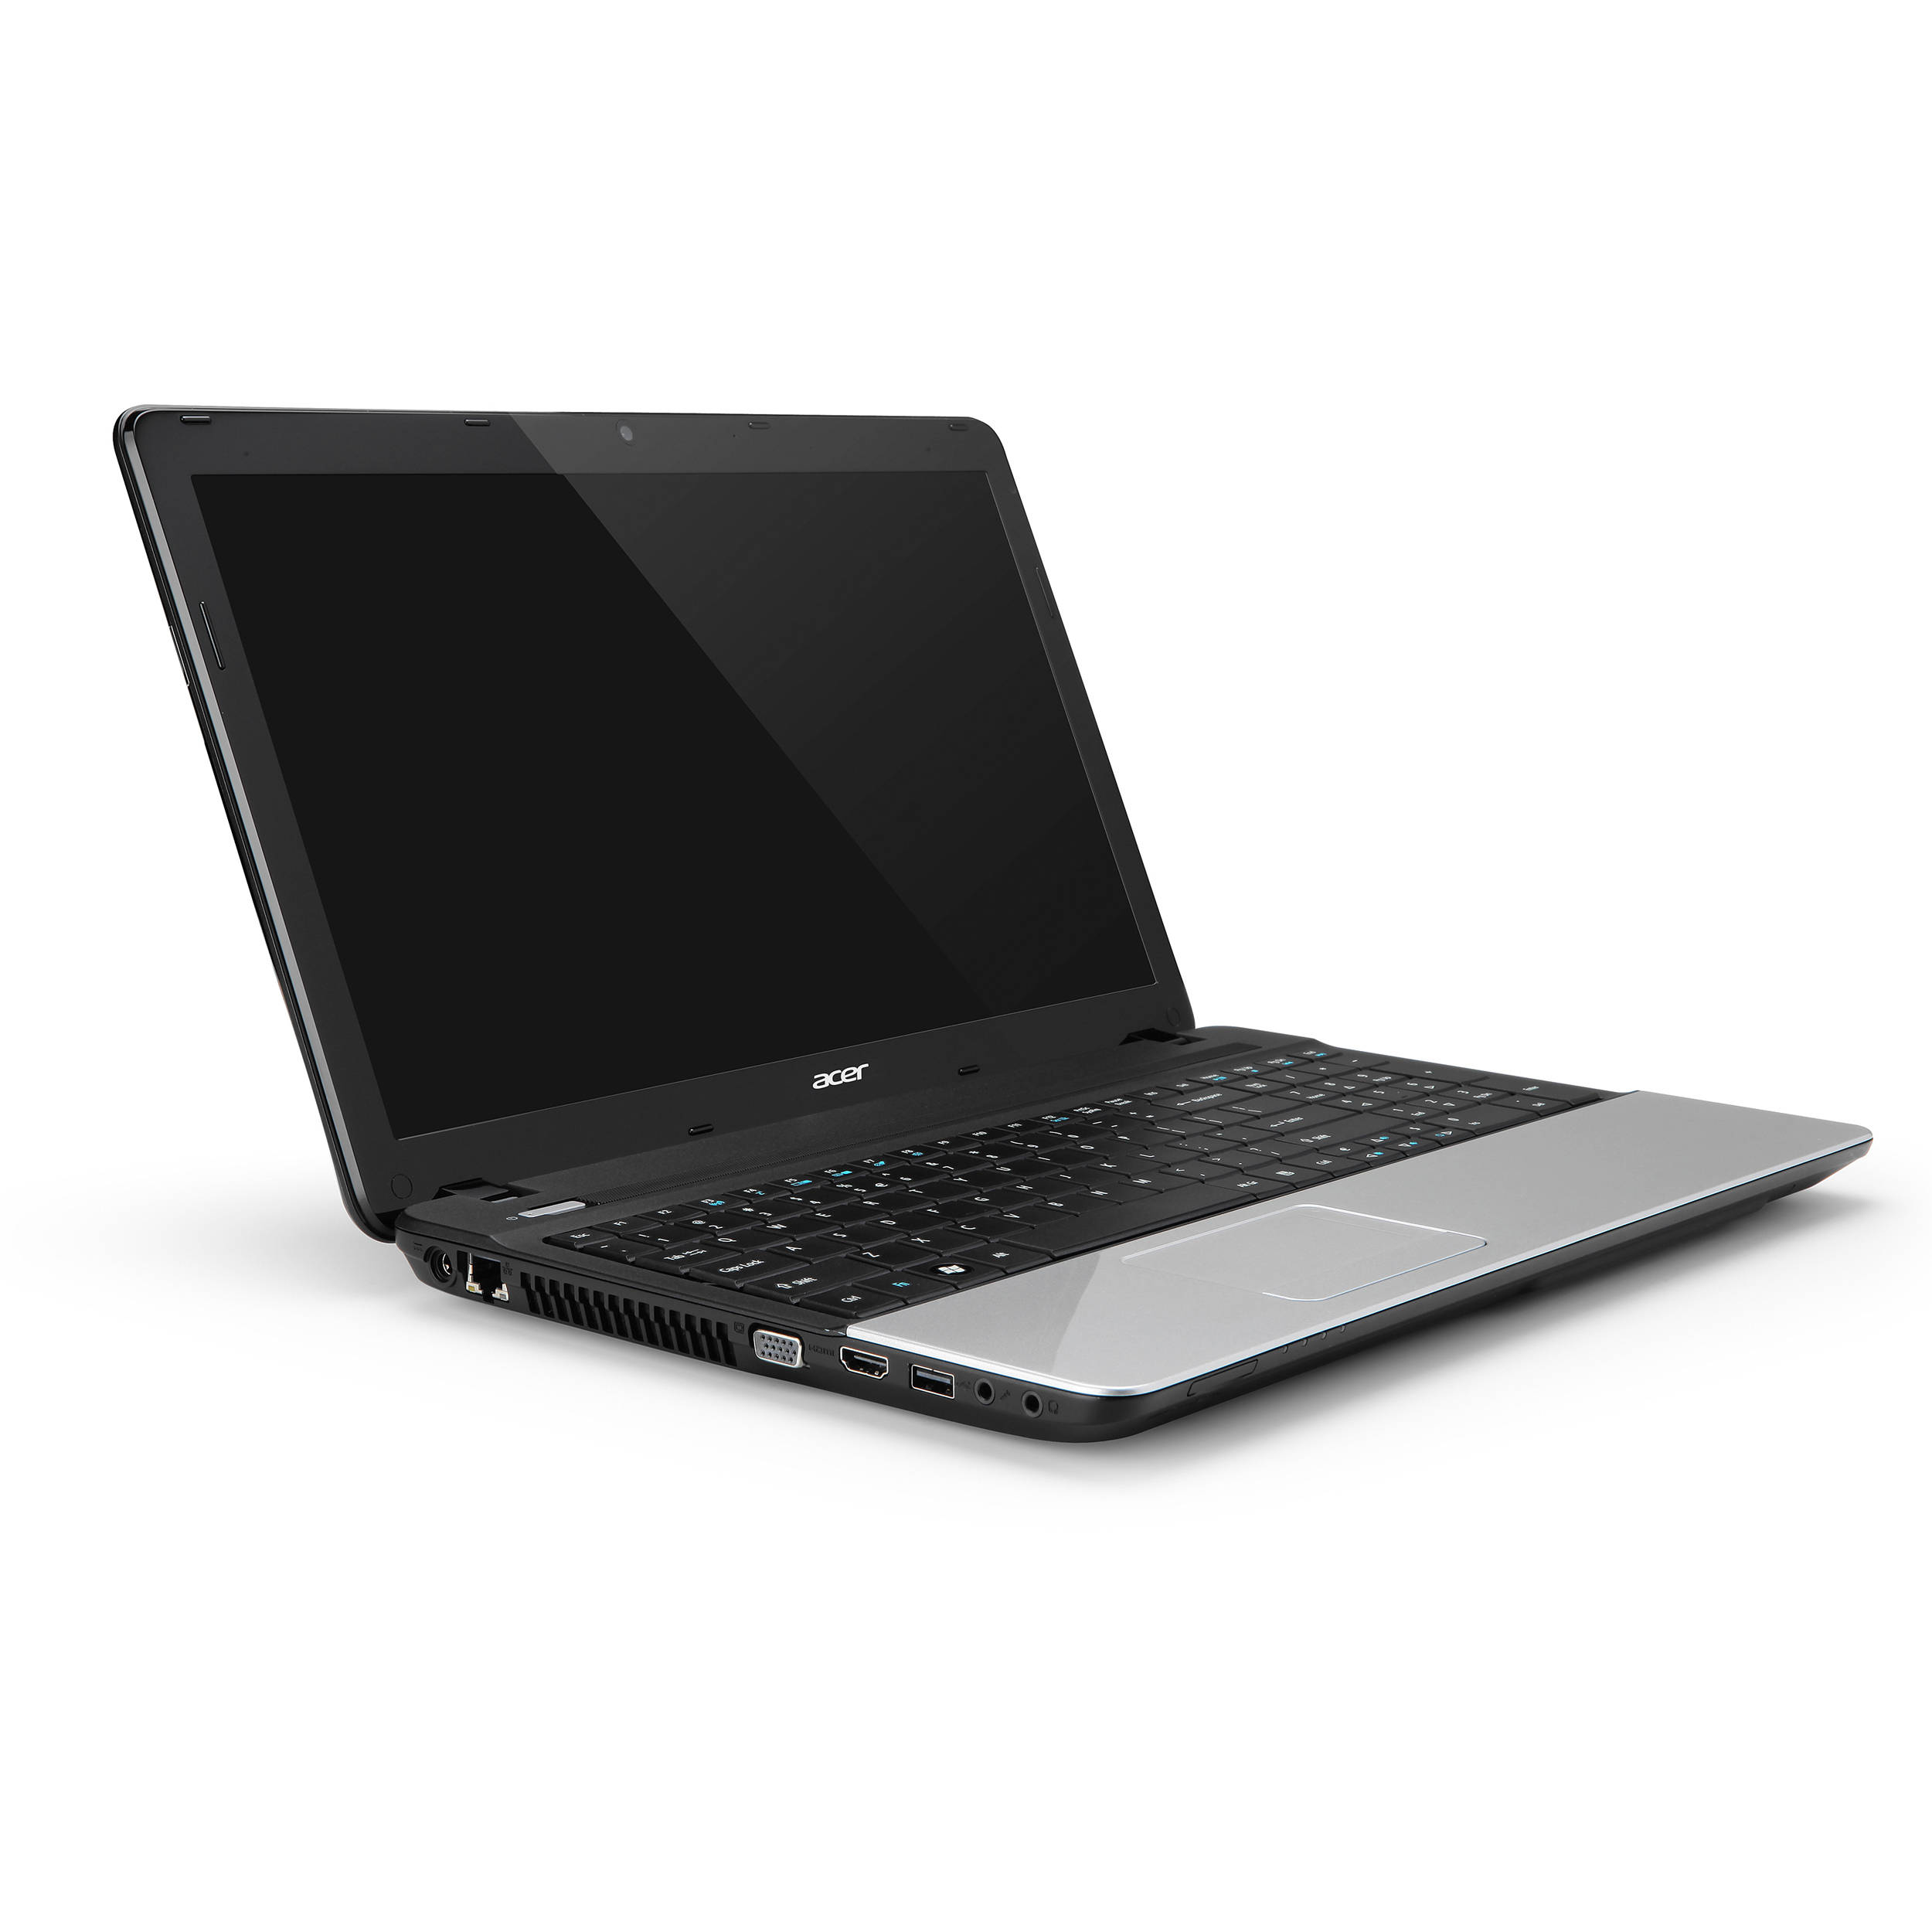 ACER ASPIRE E571 HD AUDIO DRIVER WINDOWS